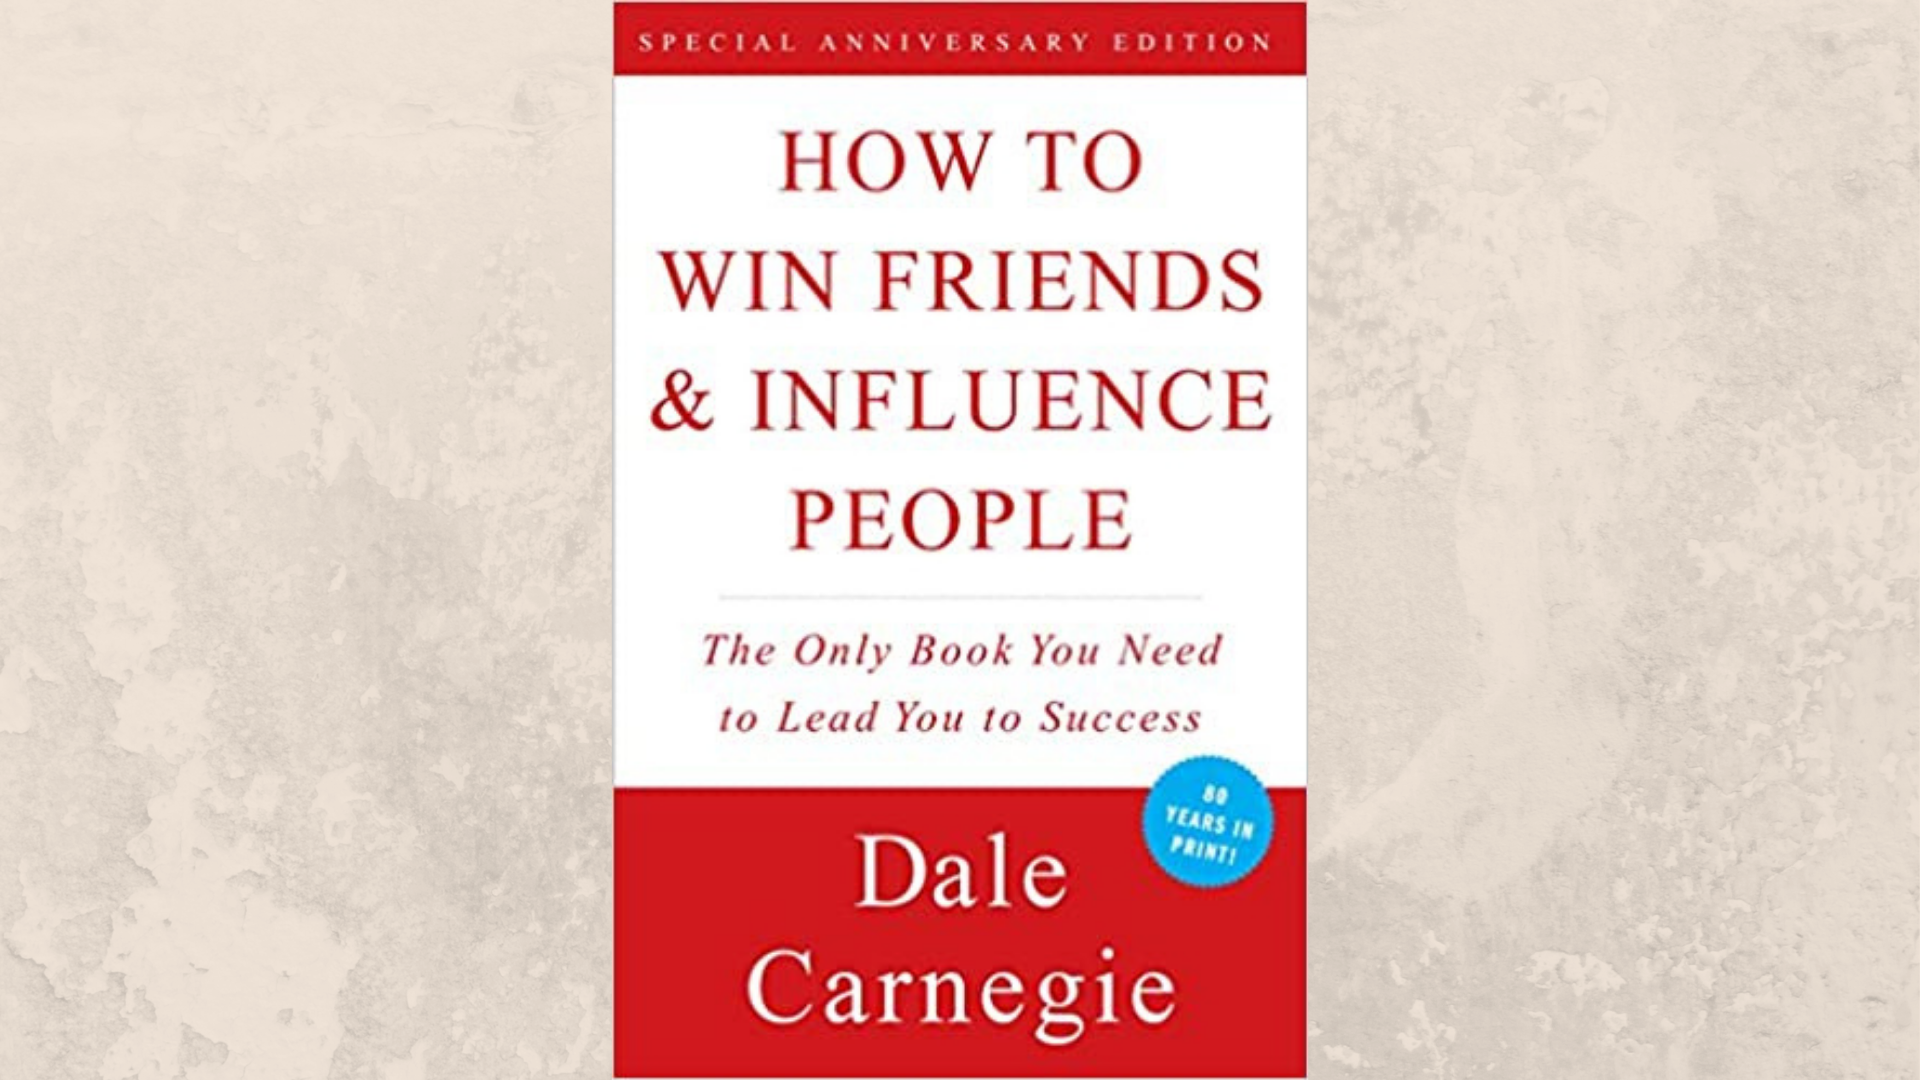 10 Classic Money Books That Everyone Should Read